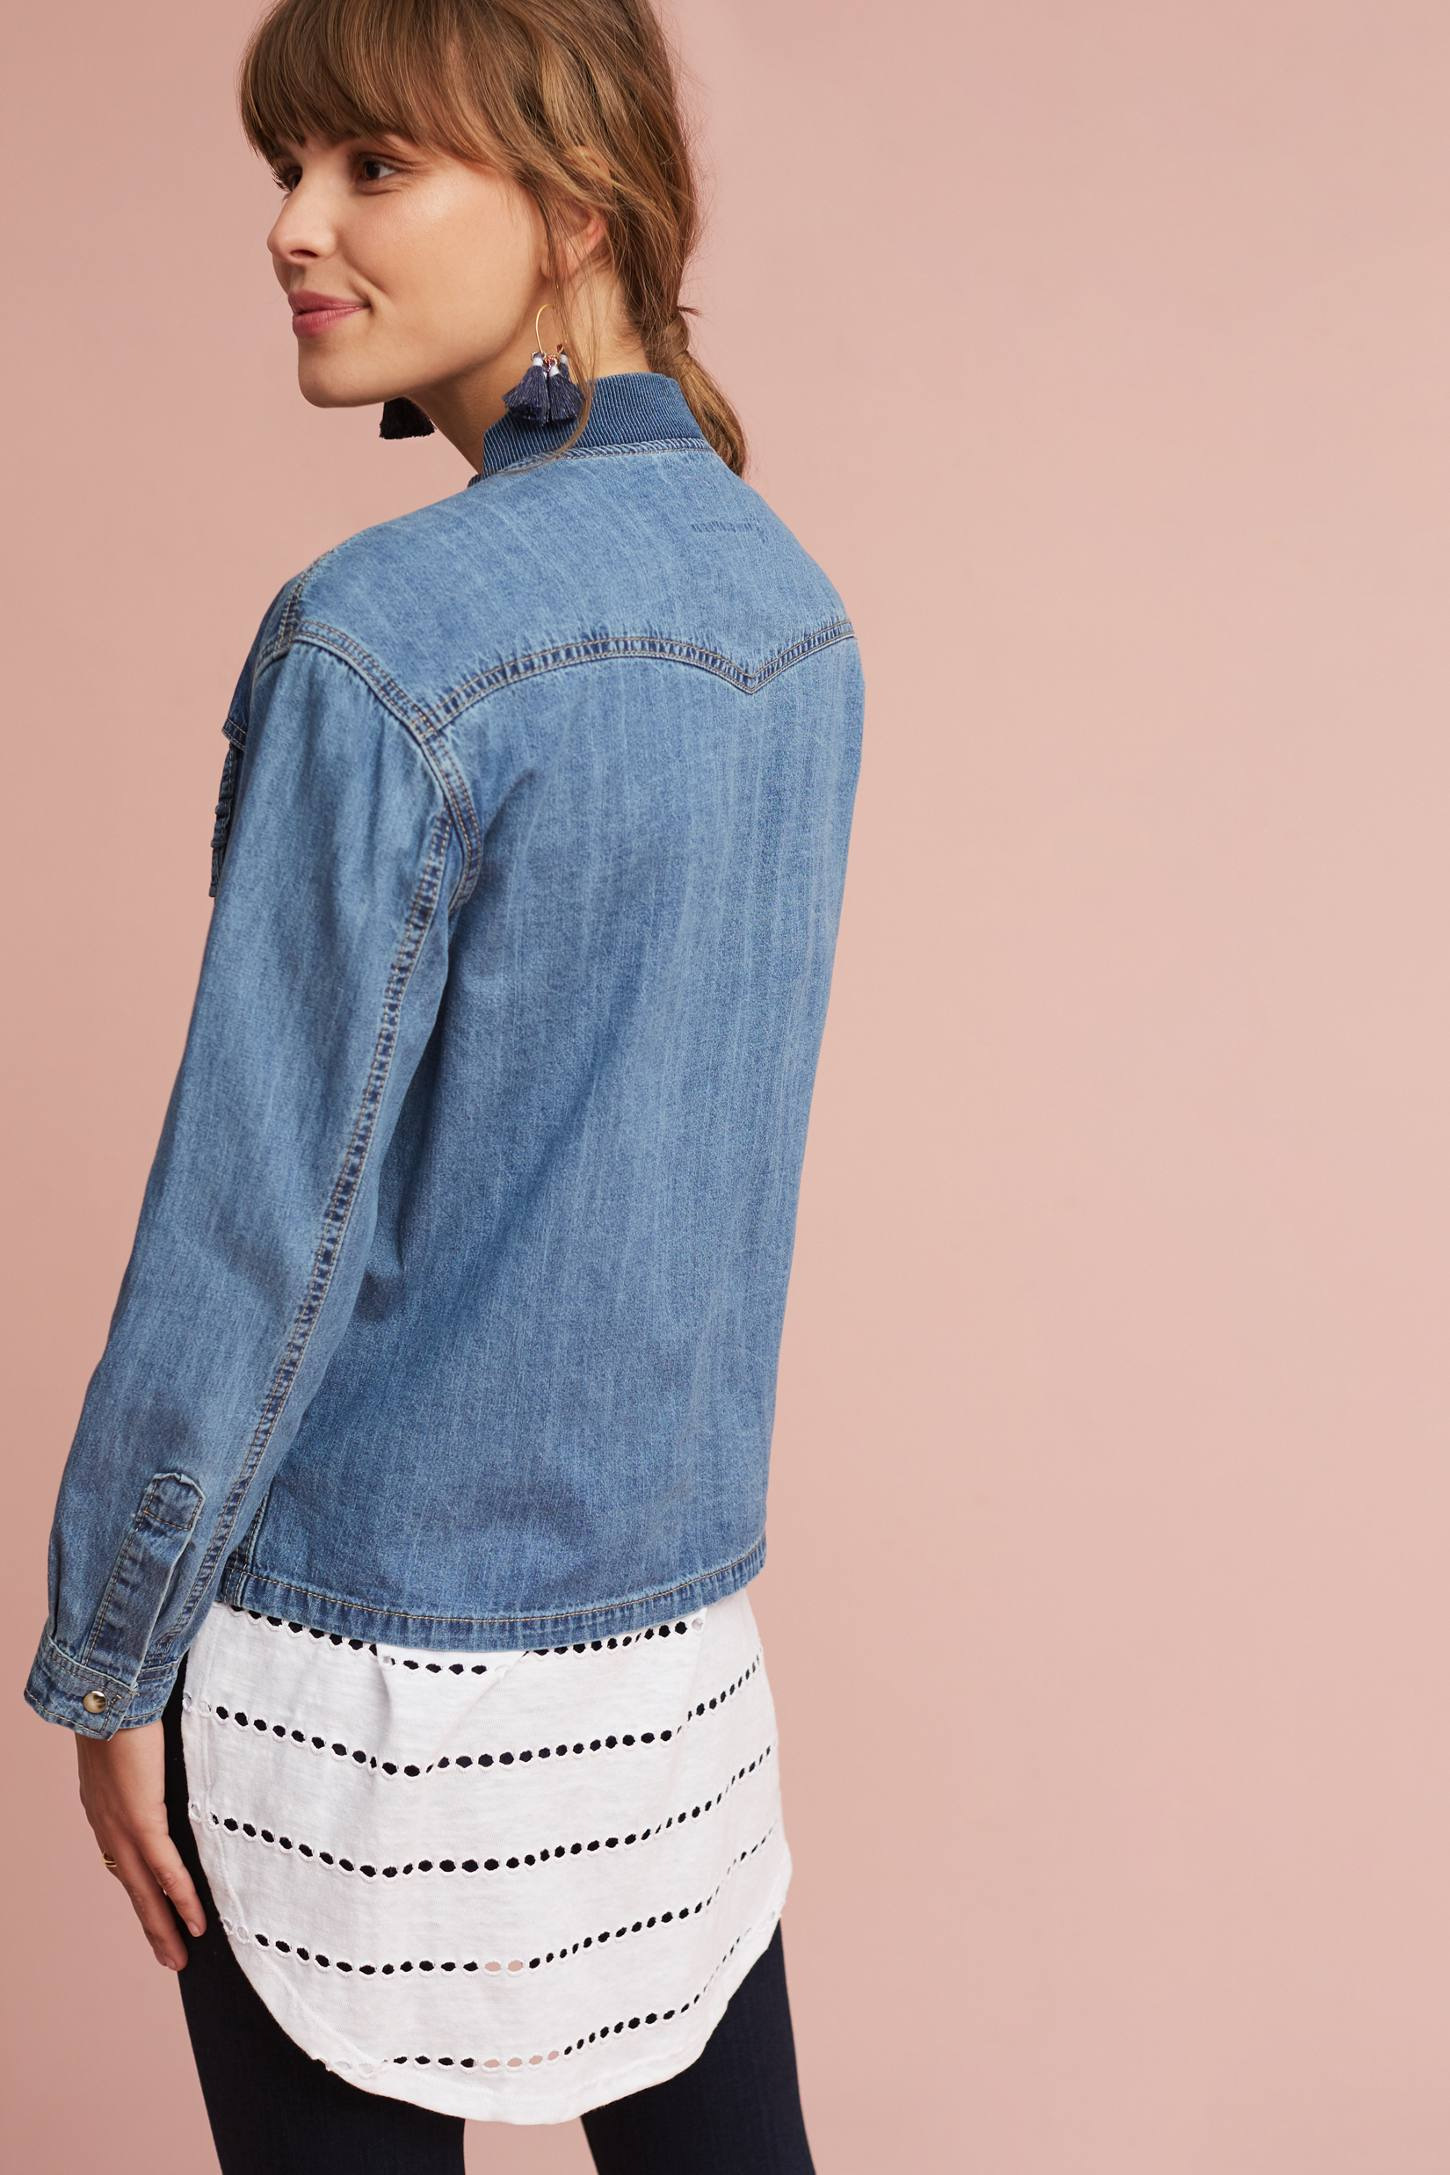 Slide View: 2: Wilma Denim Bomber Shirt Jacket